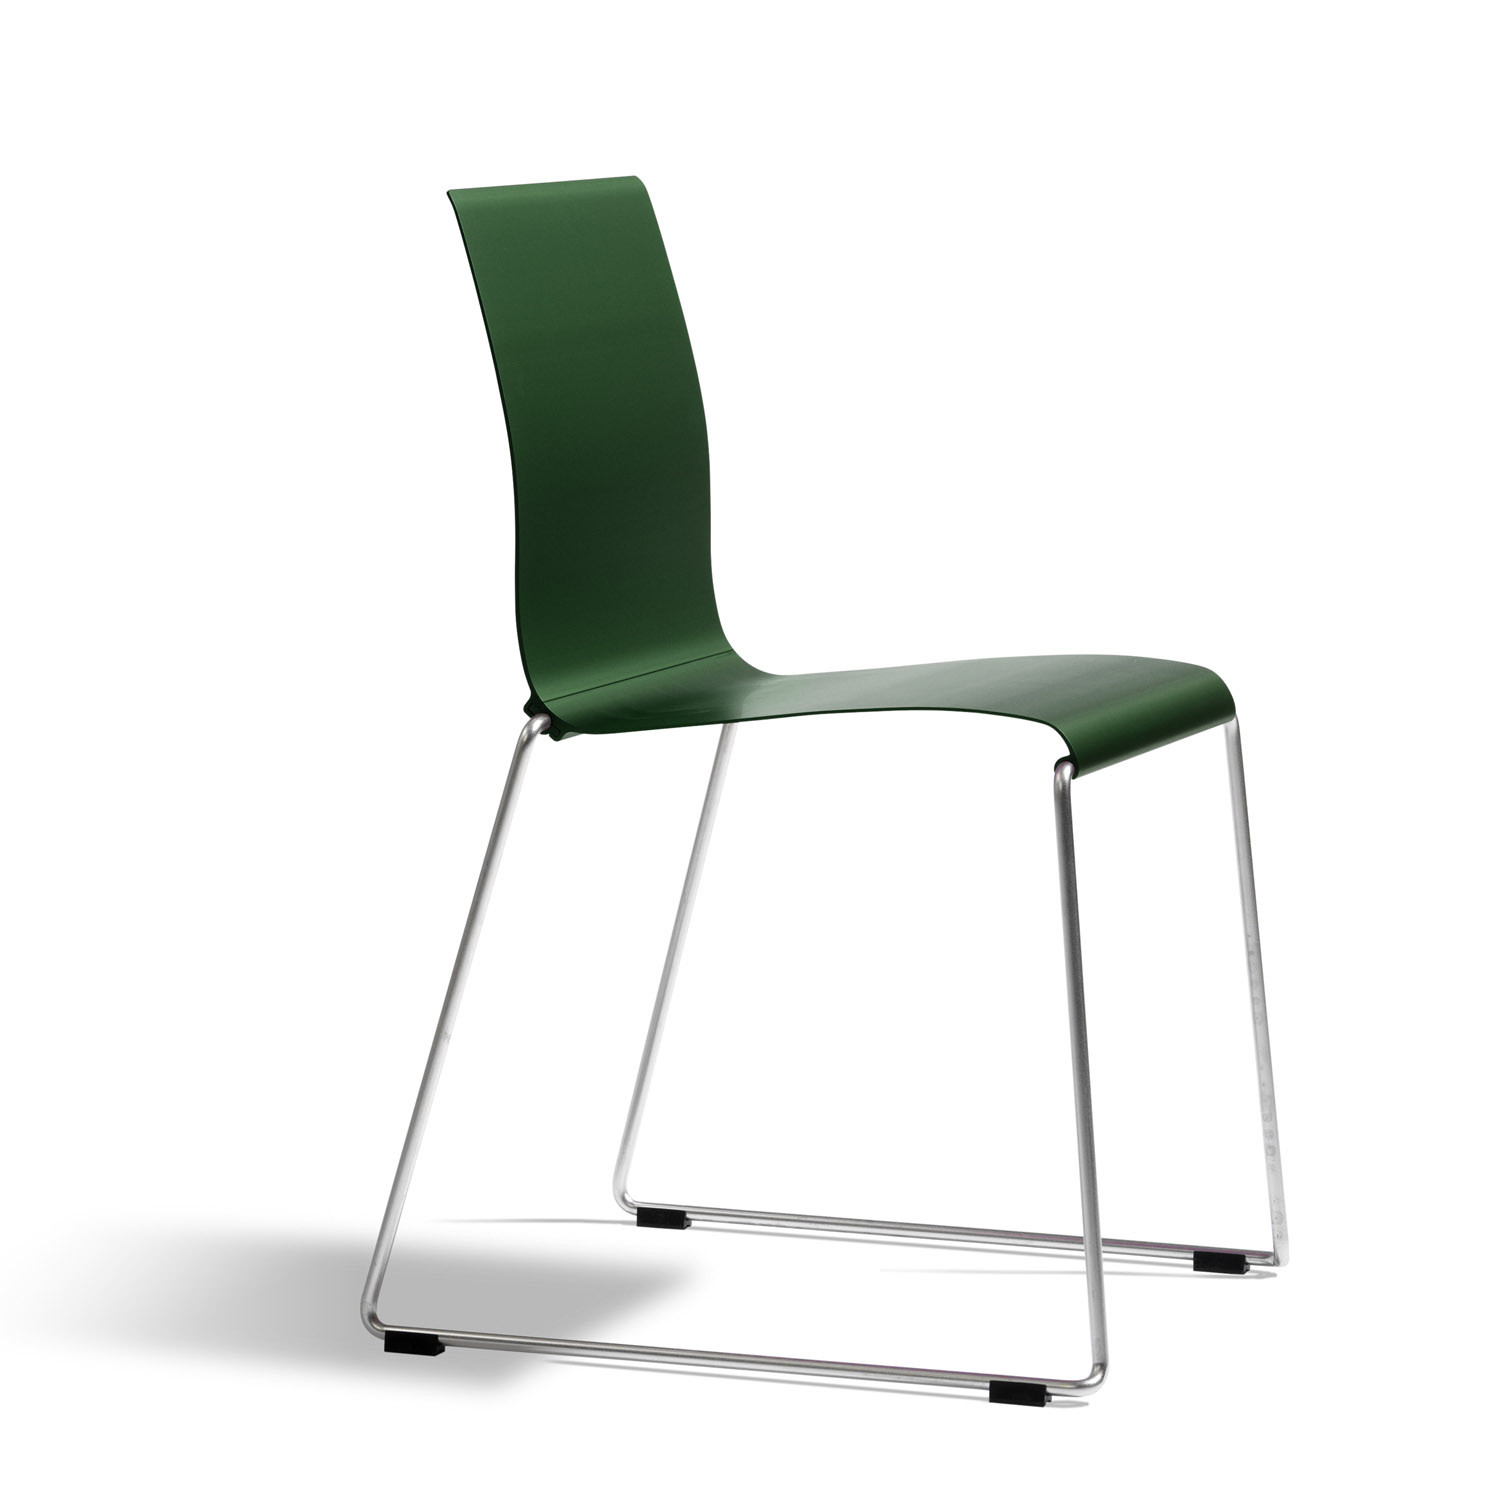 Sting Outdoor Chair